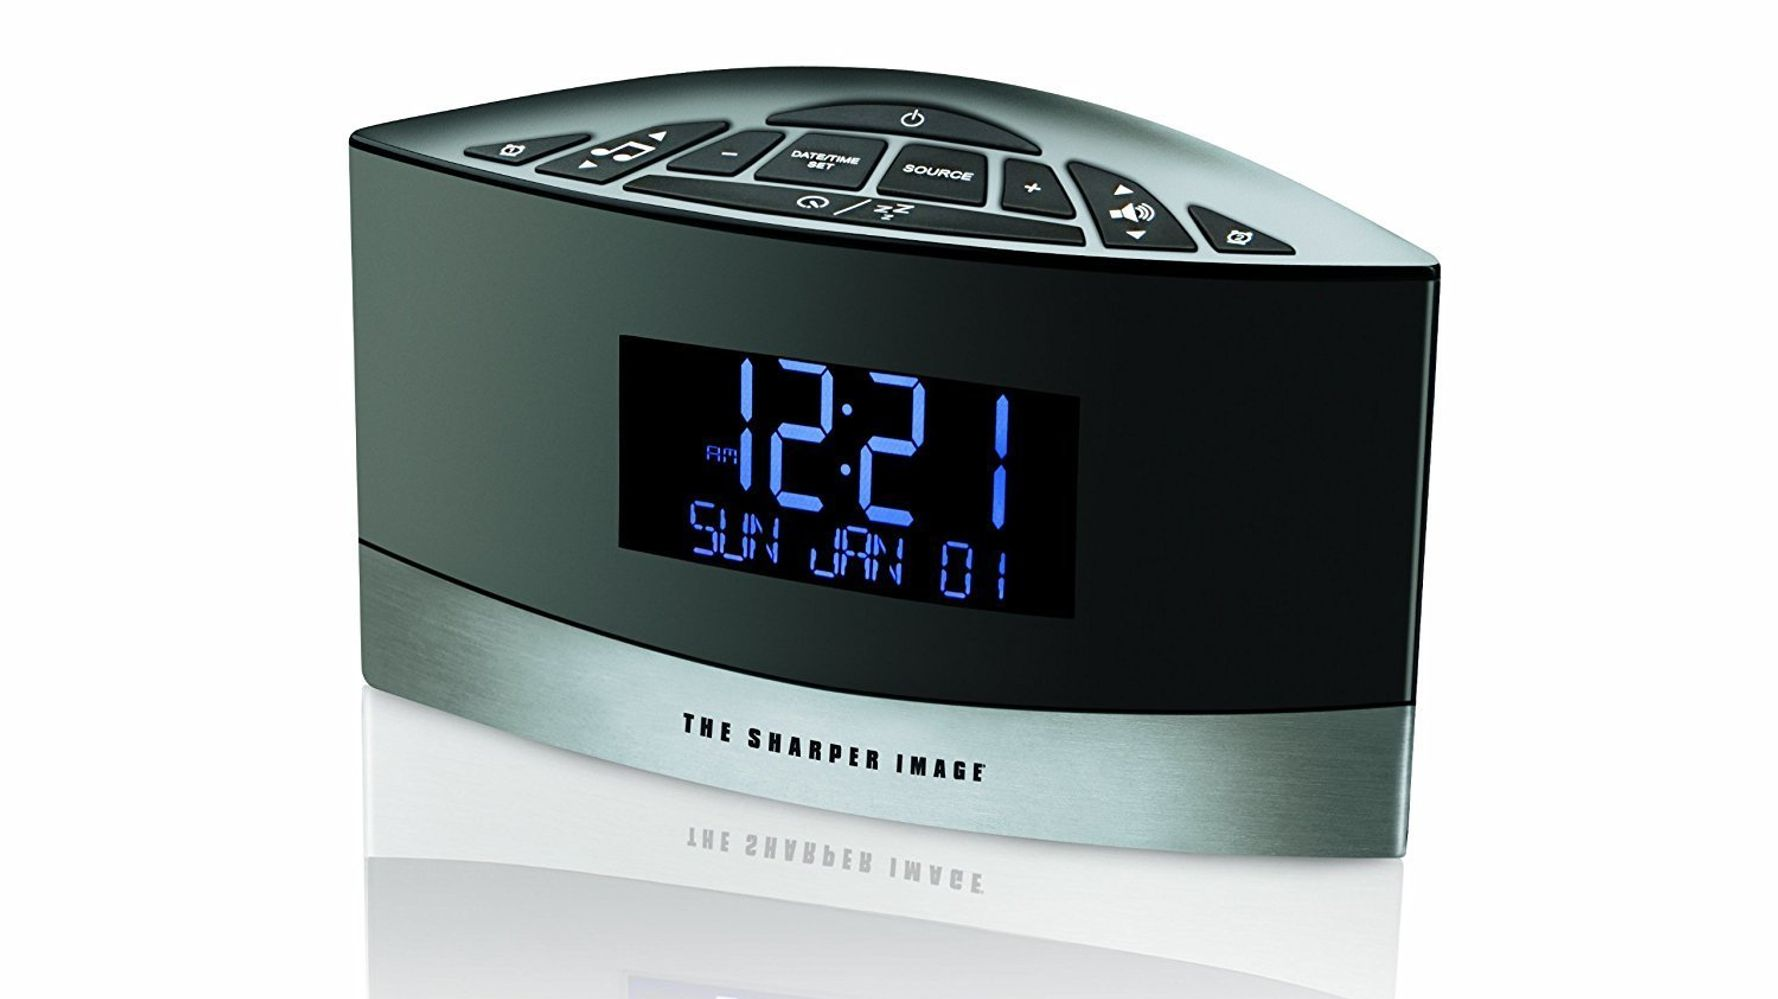 7 Of The Highest-Rated Sound Machines With Alarm Clocks On Amazon